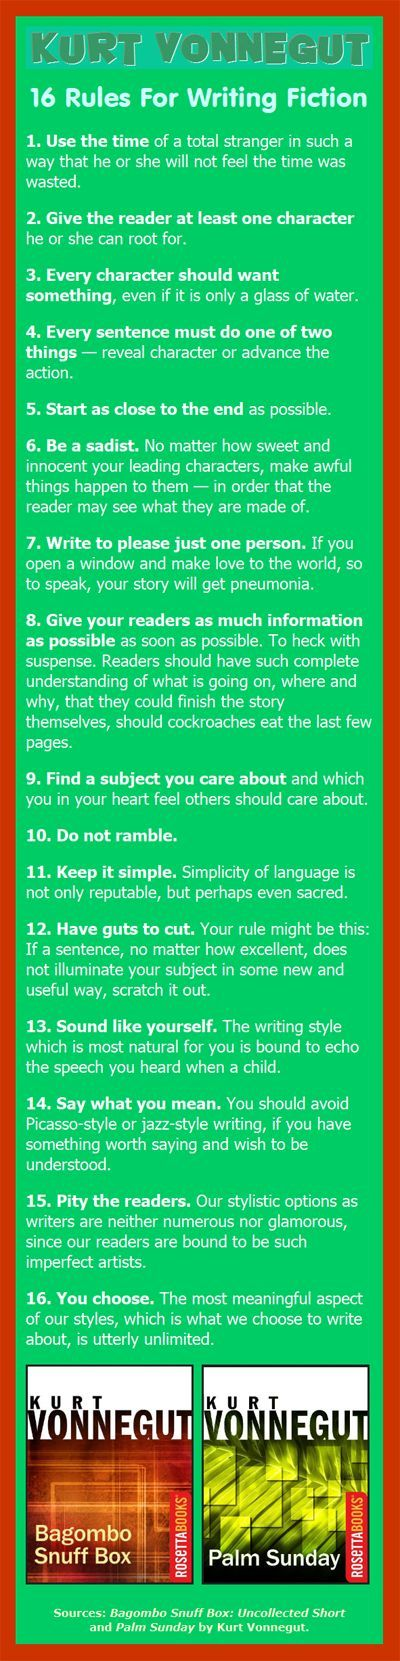 8 Powerful Writing Tips from Kurt Vonnegut